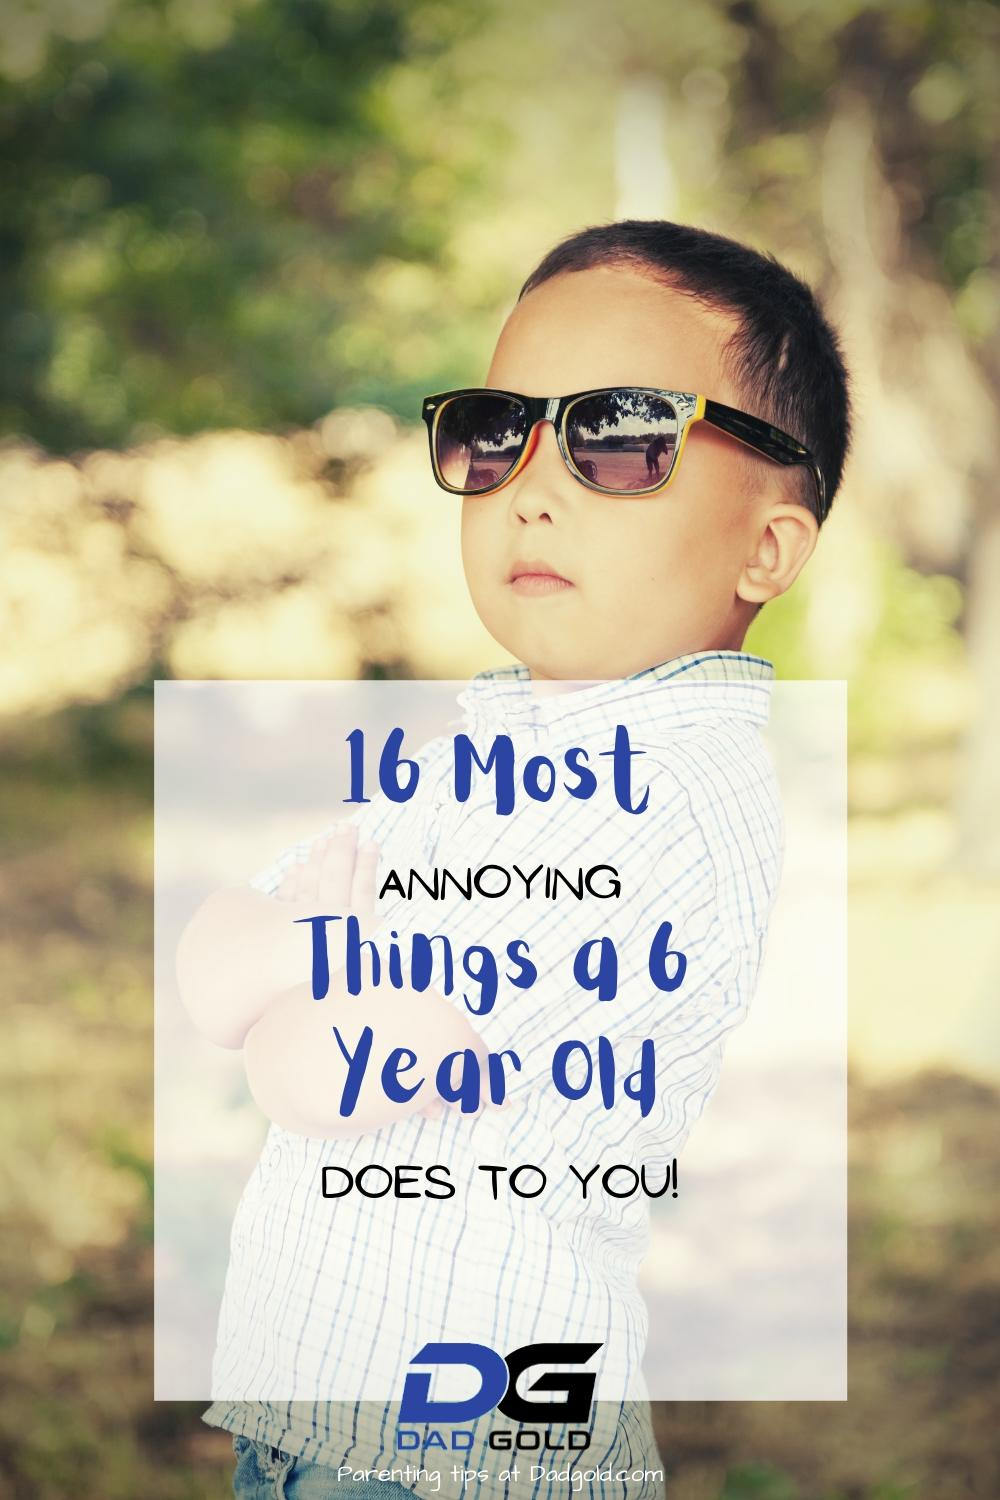 16 Most Annoying Things a 6 Year Old Does